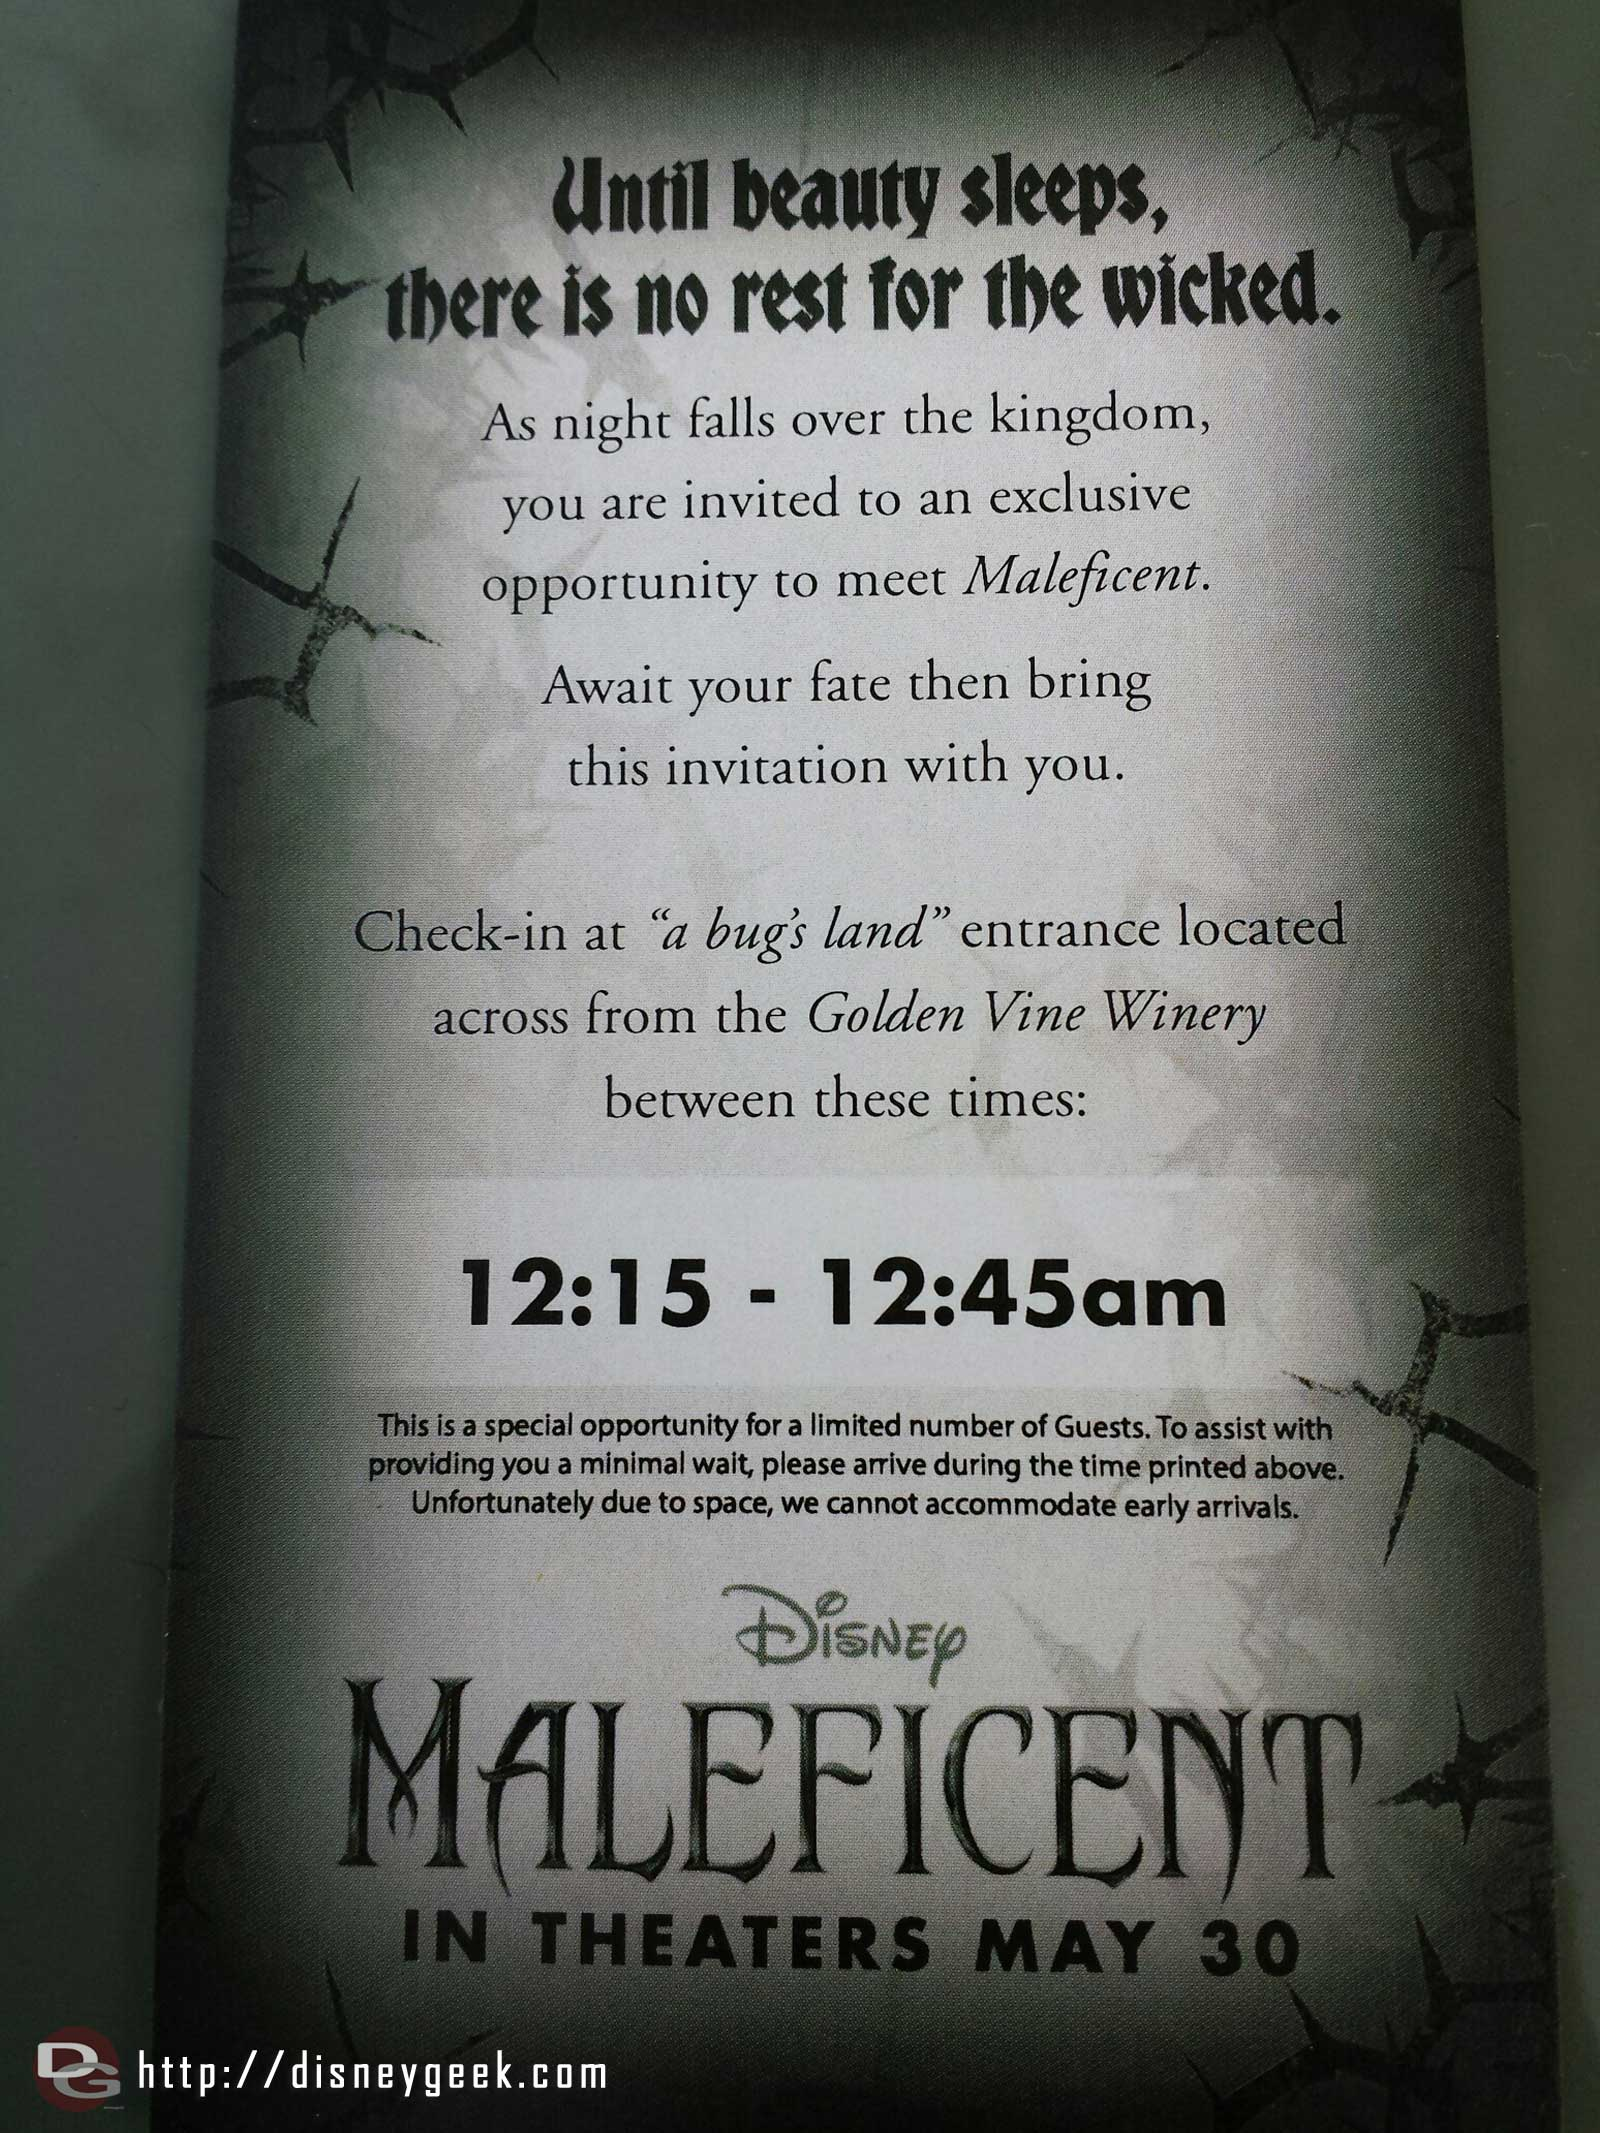 Vouchers to meet Maleficent later tonight are being given out at the Blue Sky Cellar